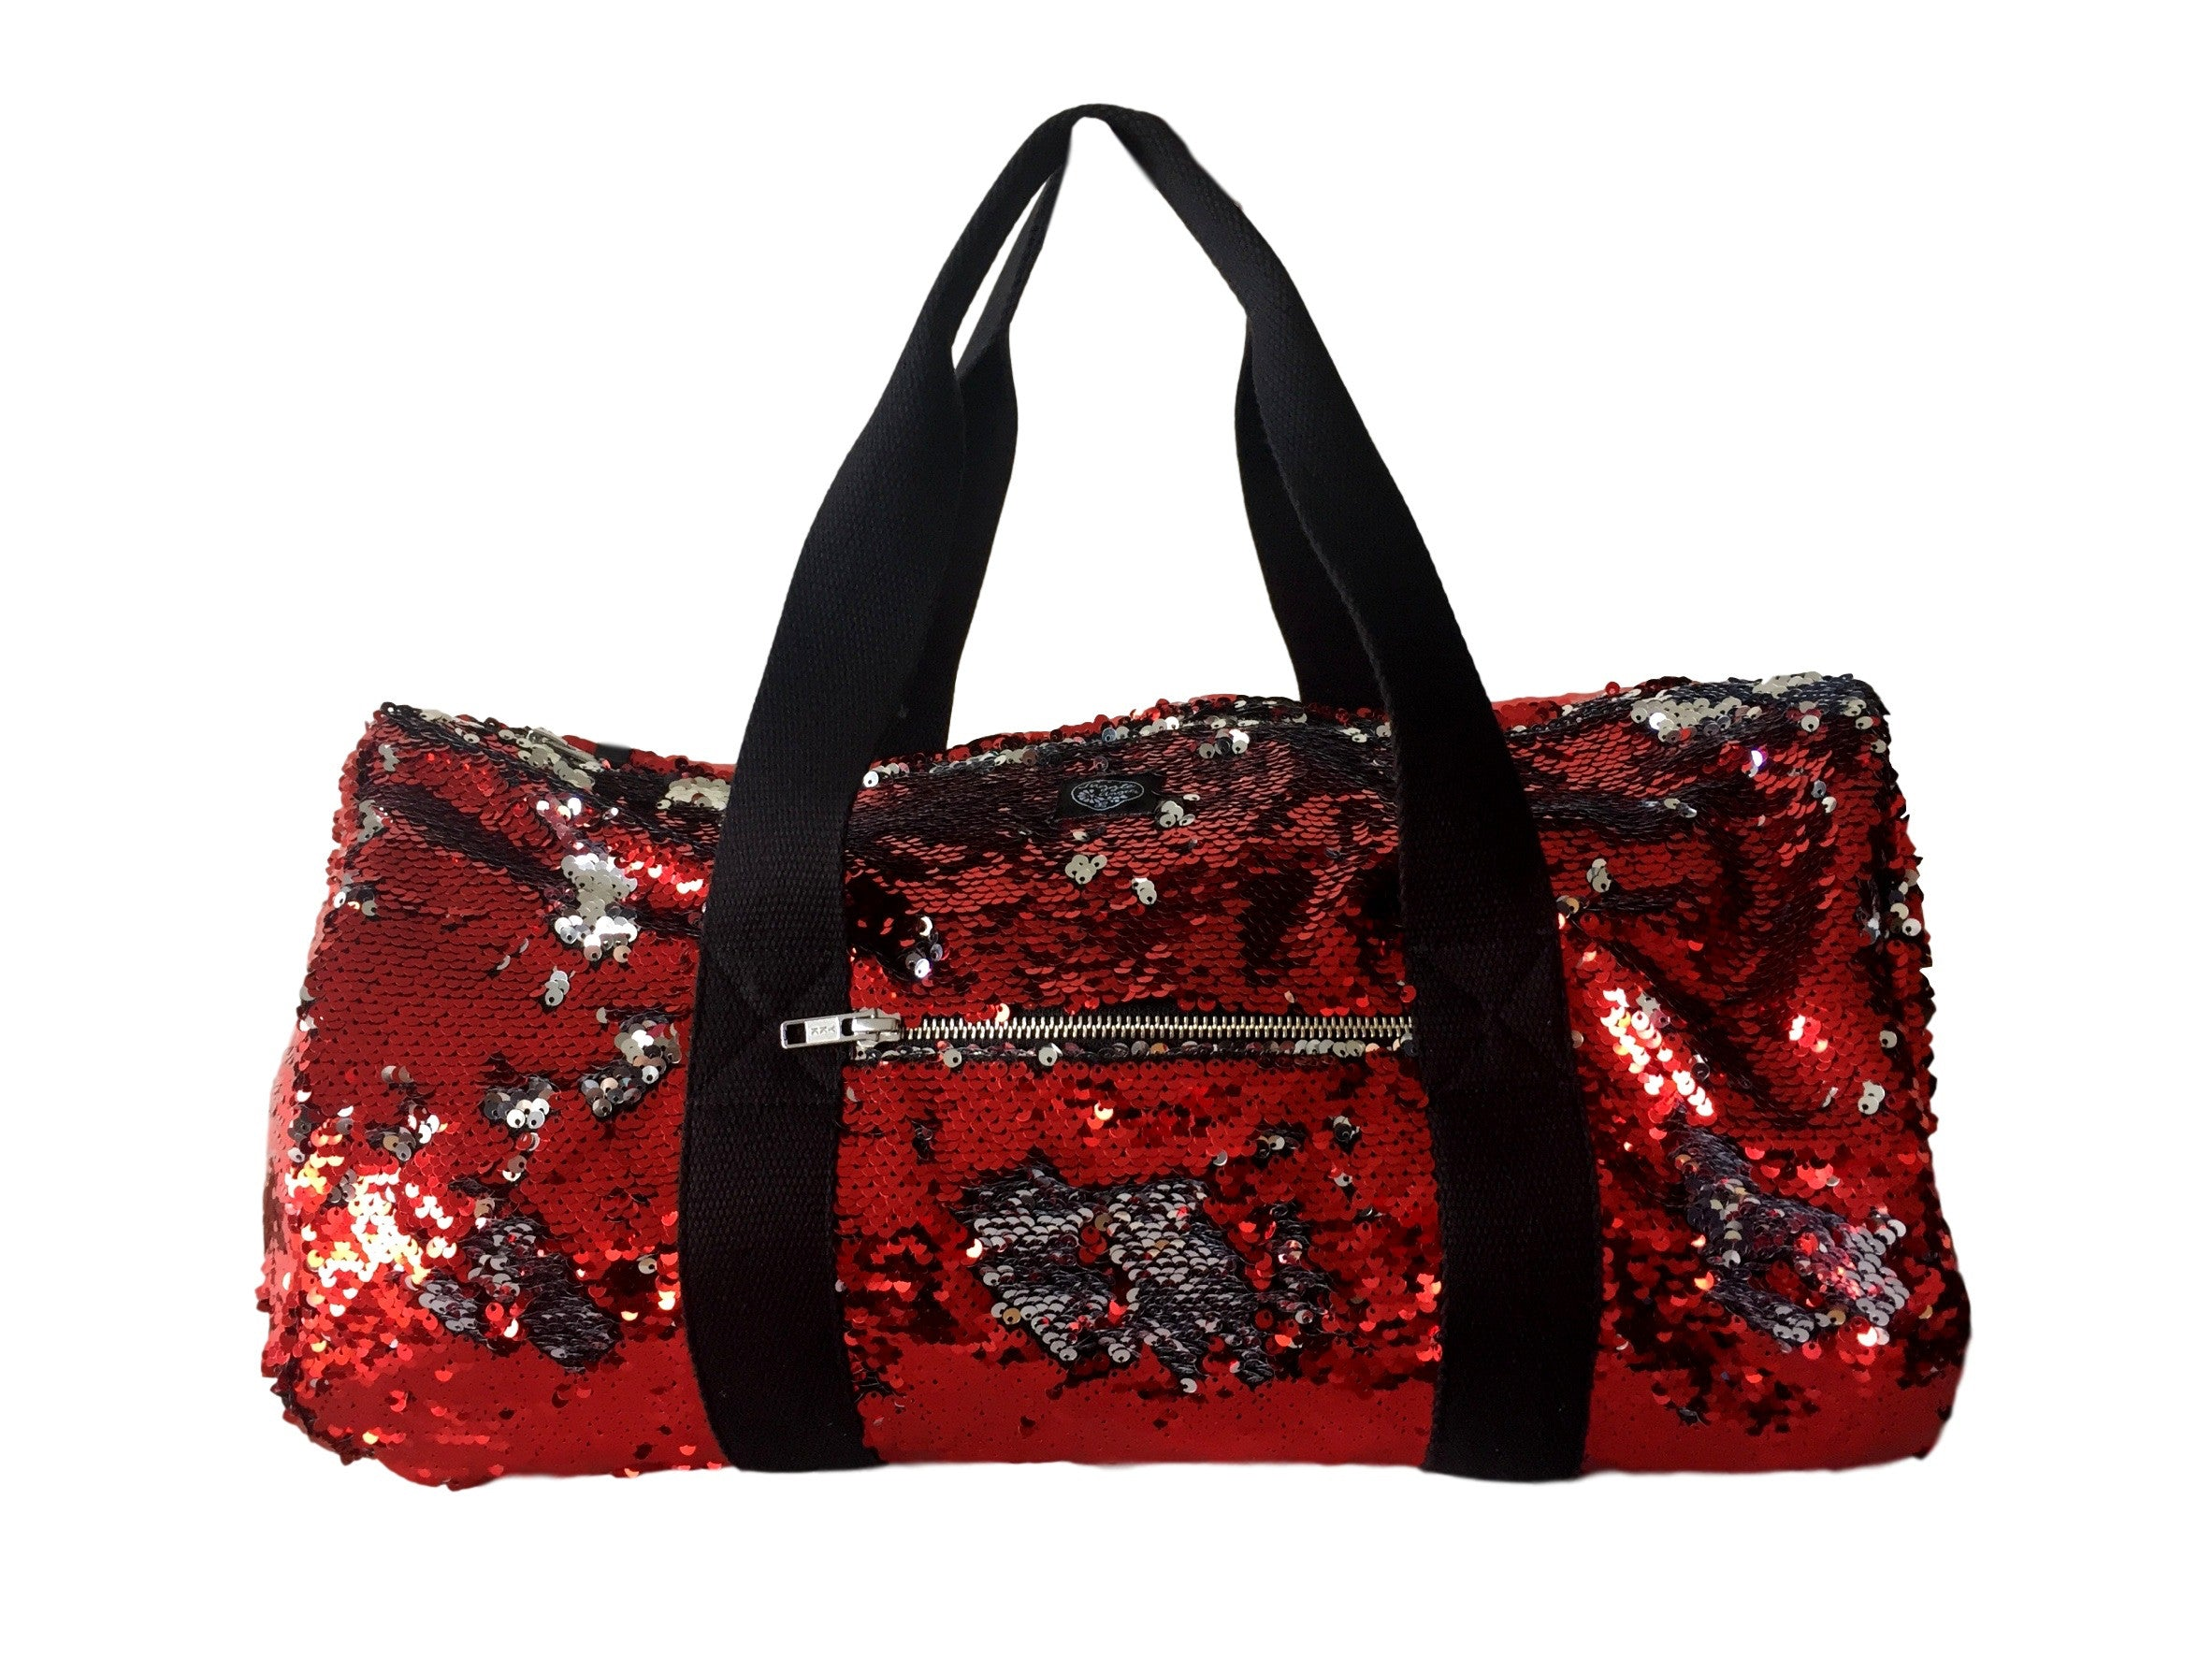 80 Red Sequins Bag